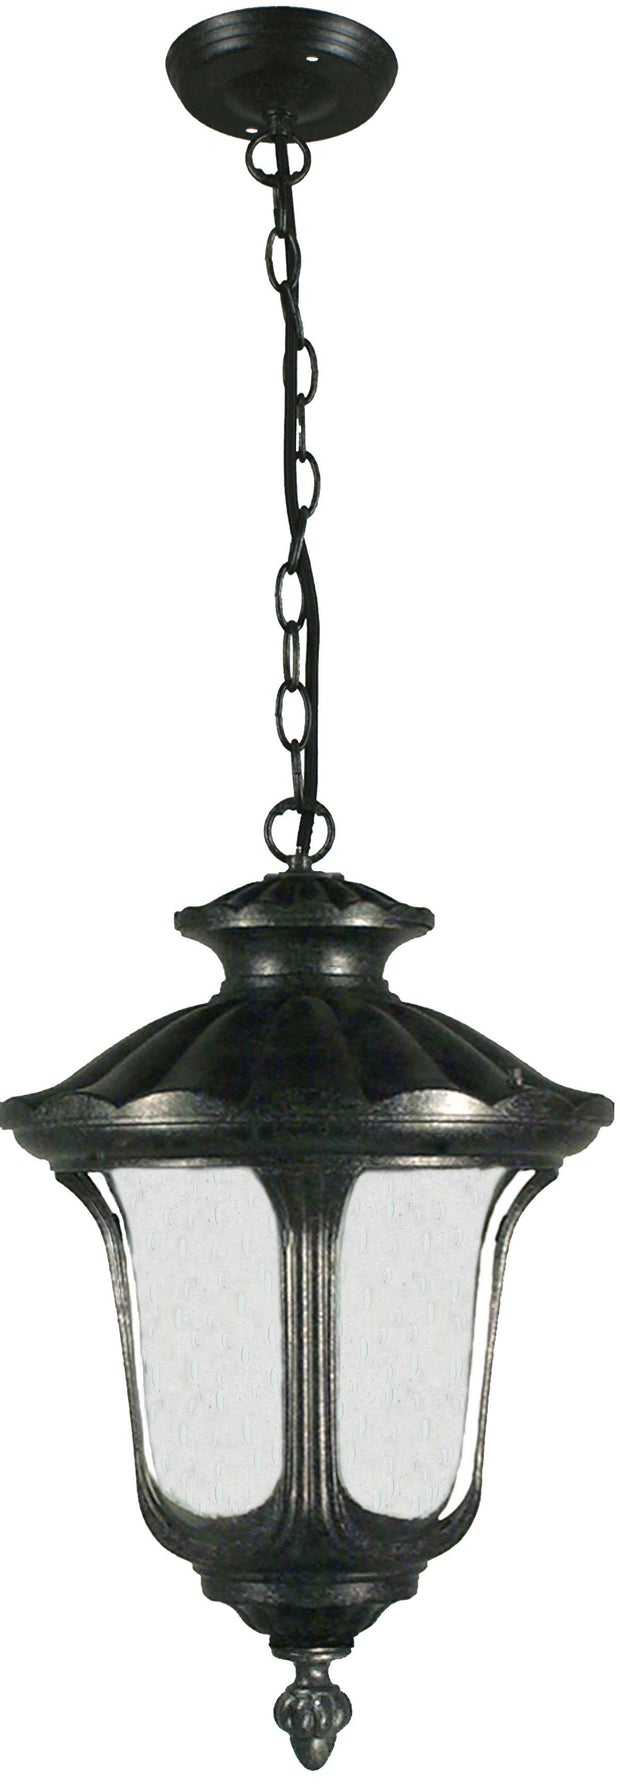 Waterford Chain Pendant Light